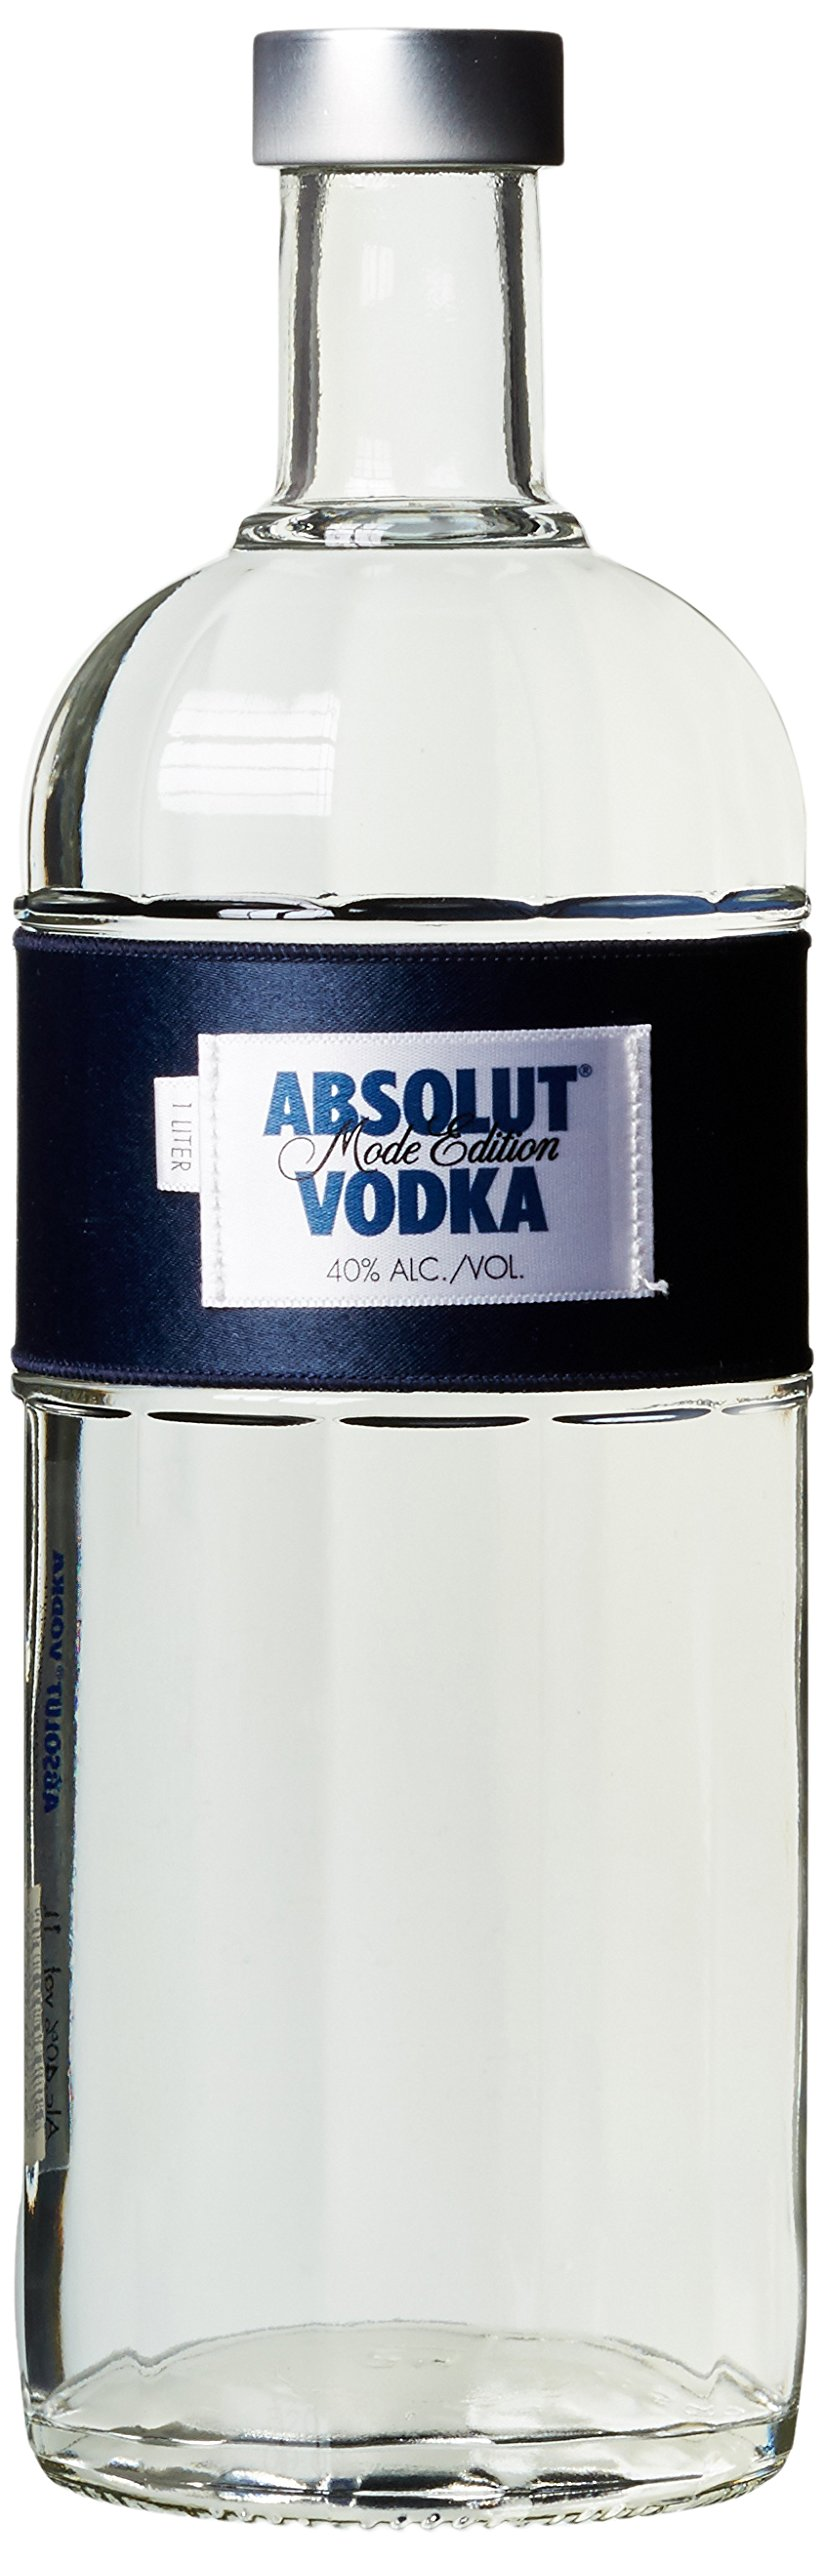 Absolut-Vodka-Mode-Limited-Edition-1-x-1-l